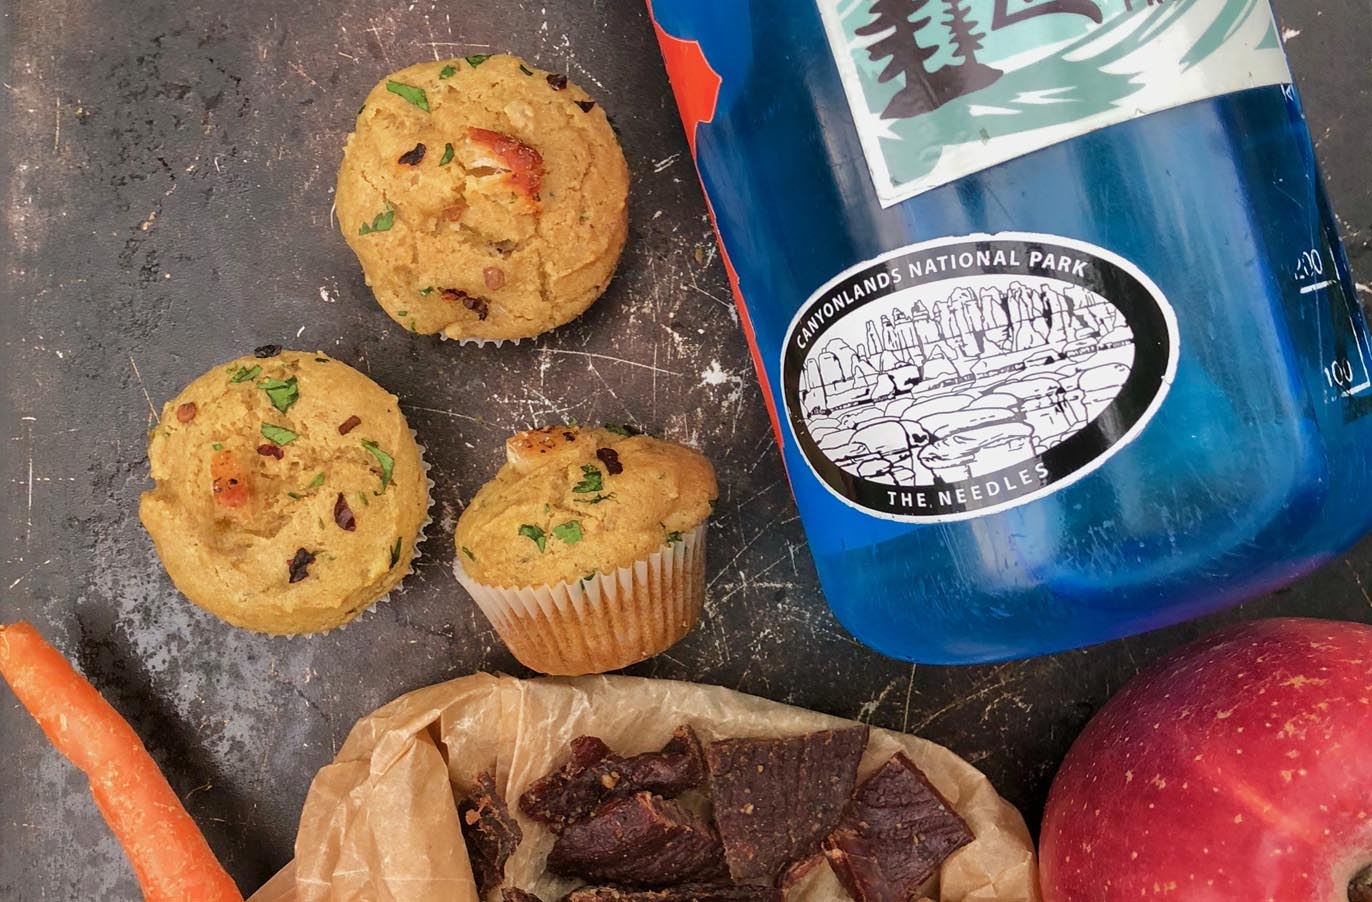 paleo green chili chicken mini snack muffins next to a water bottle and trail snacks